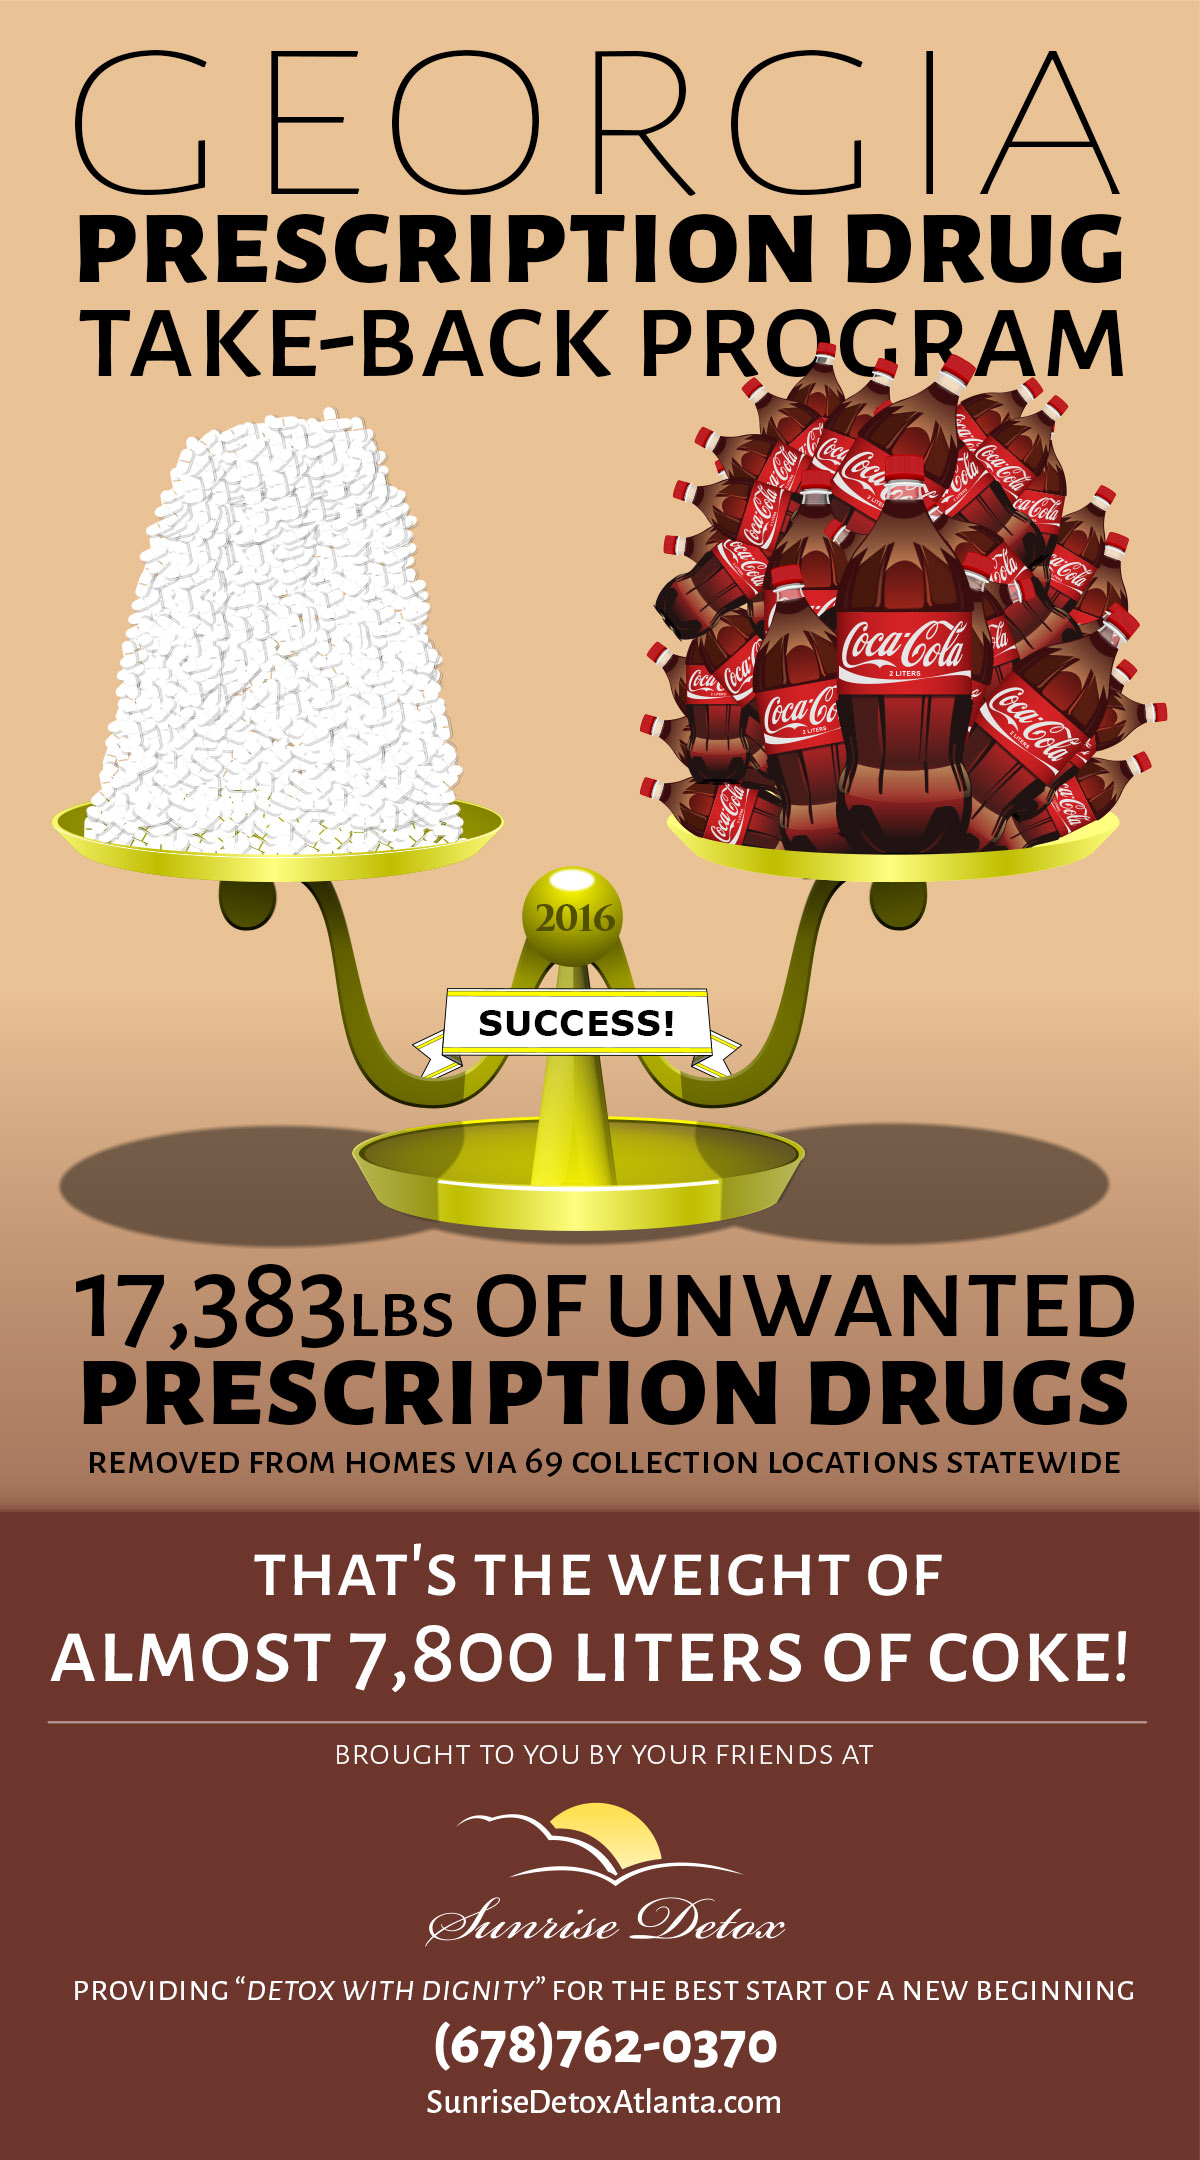 Sunrise is proud to announce that the 2016 Prescription Drug Take-Back Day removed over 9 tons of unwanted medication from Georgia homes!